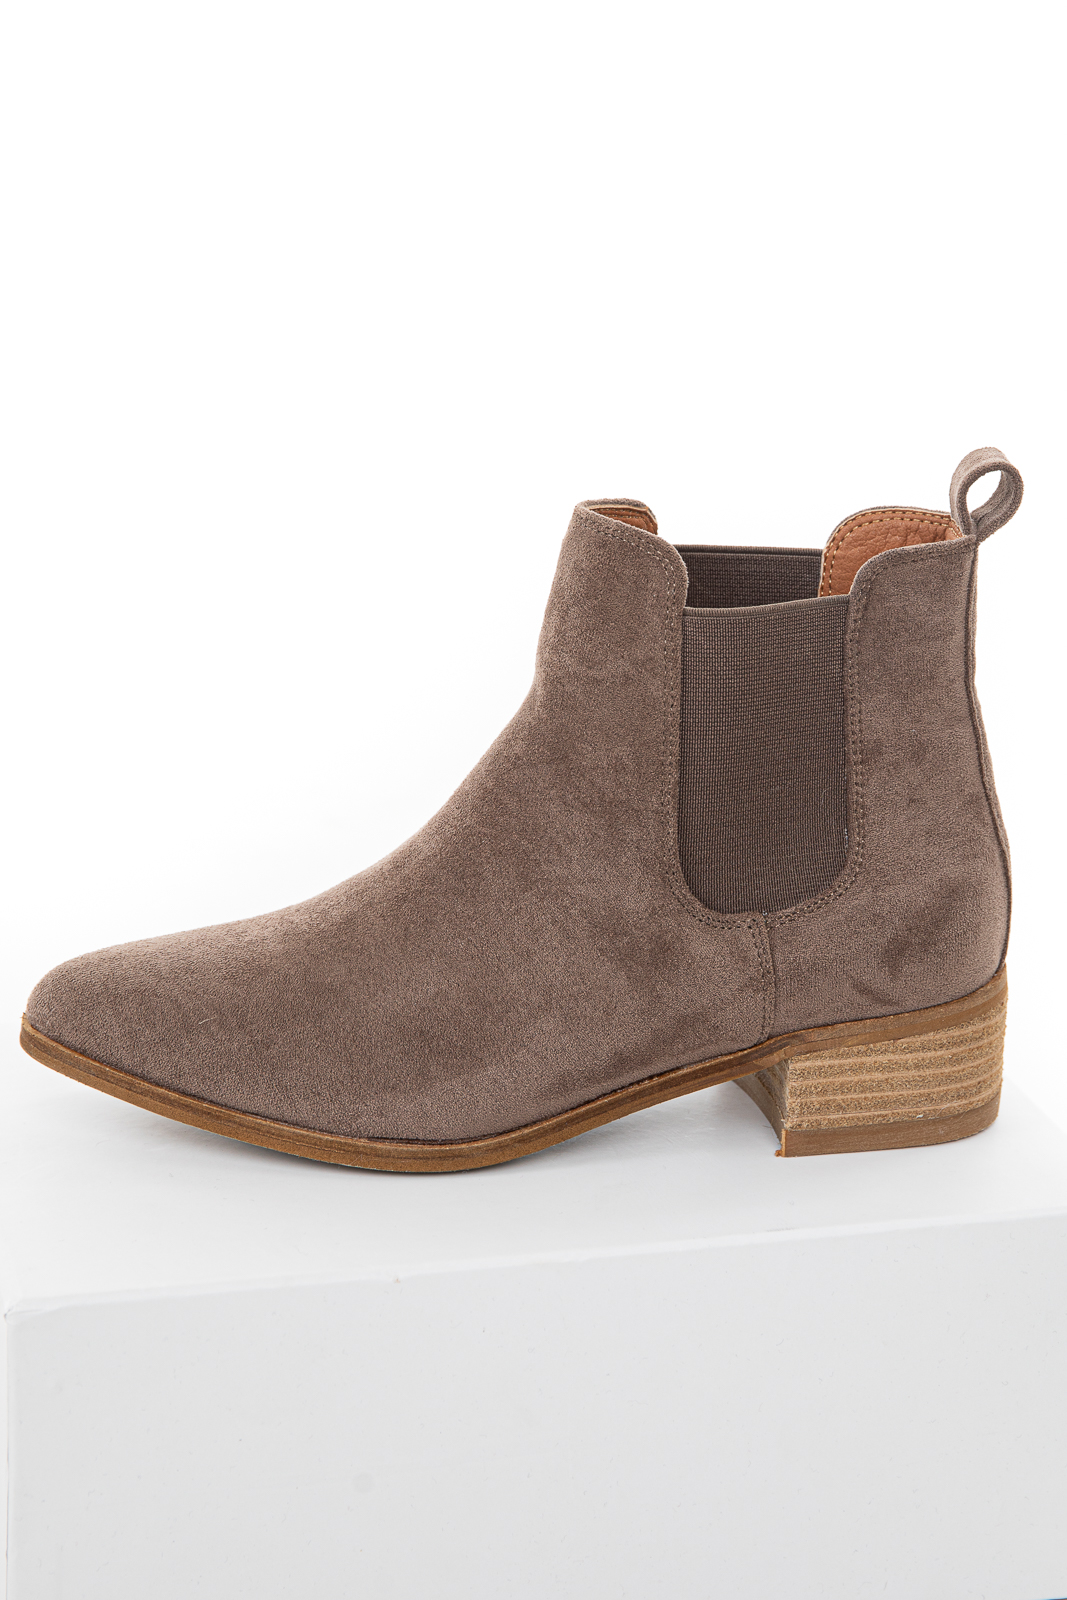 Cocoa Faux Suede Elastic Slip On Booties with Eyelet Details